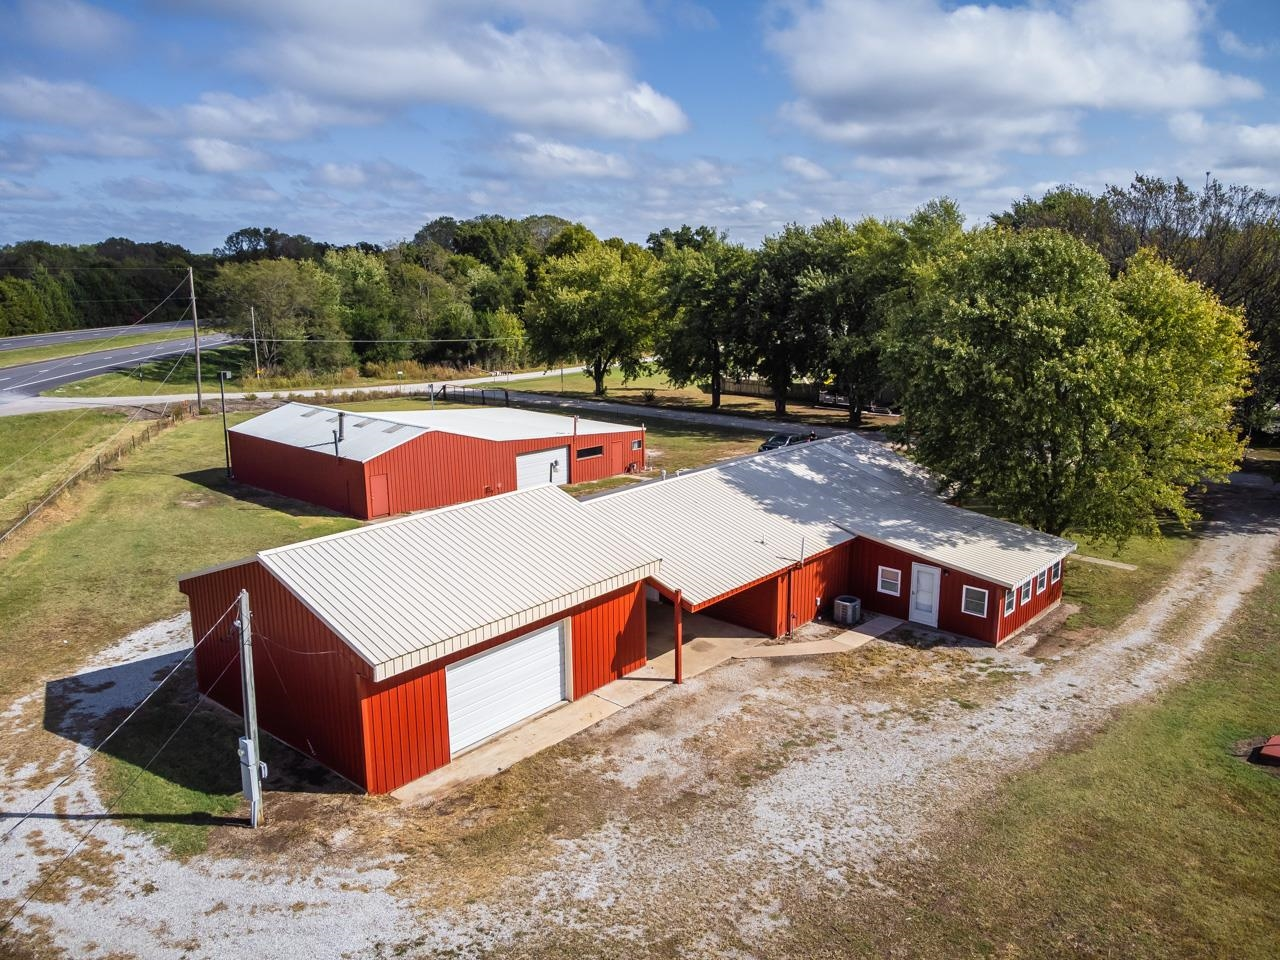 Wanting to be outside of town on a couple of acres? Need outbuildings? Want to start a business? This newly renovated property can now be yours! Updated down to the studs in 2018 this home is like new!  You will love the log exterior and perfect front porch! As you walk inside you will be wowed by the open floor plan and modern design throughout this home! The kitchen is a chefs dream with tons of new cabinetry, counter space, and new stainless steel appliances including gas range! The kitchen is hub of the home as it is open to the living/dining room! Off the kitchen you will find a large bedroom with tons of windows for nature light and separate exit. Perfect for a guest room or separate living area! Down the hall you will find the large master suite with a newly remodeled bathroom complete with a walk in shower! As if that was not enough you will love the remodeled hall bathroom and separate laundry room! Everything in this home from the plumbing, electric, central heat and air, appliance and bathroom less than 5 yrs old! Need more than 2 bedrooms? No worries! There is plenty of space to add an addition if needed. The oversized 2 car garage is complete with new electric and lighting! The large46X66 building offers bathroom, heating, 4 walk-in doors, Two 14ft overhead doors that allow for pull through access, and office area making this the perfect location if you would like to own your own business! Located on highway 77 and only a mile from town it is the perfect location! Don't miss this property and call listing agent today!